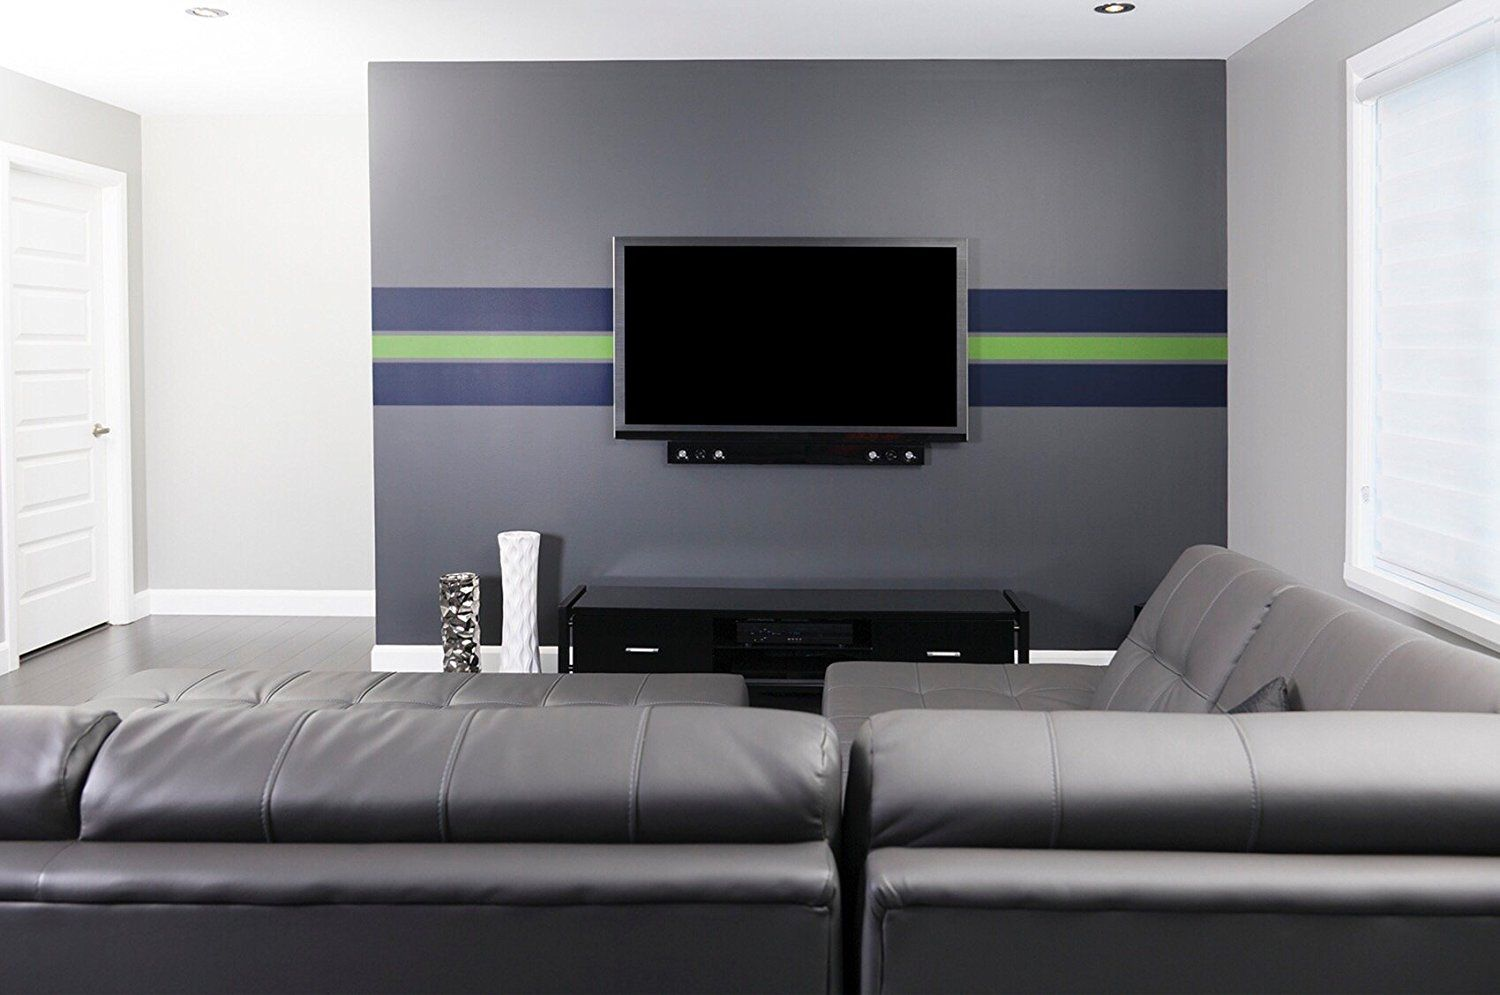 Tempaint Removable Peel And Stick Paint Savannah Blue Amazon Com With Images Seattle Sports Sports Wallpapers Green And Grey